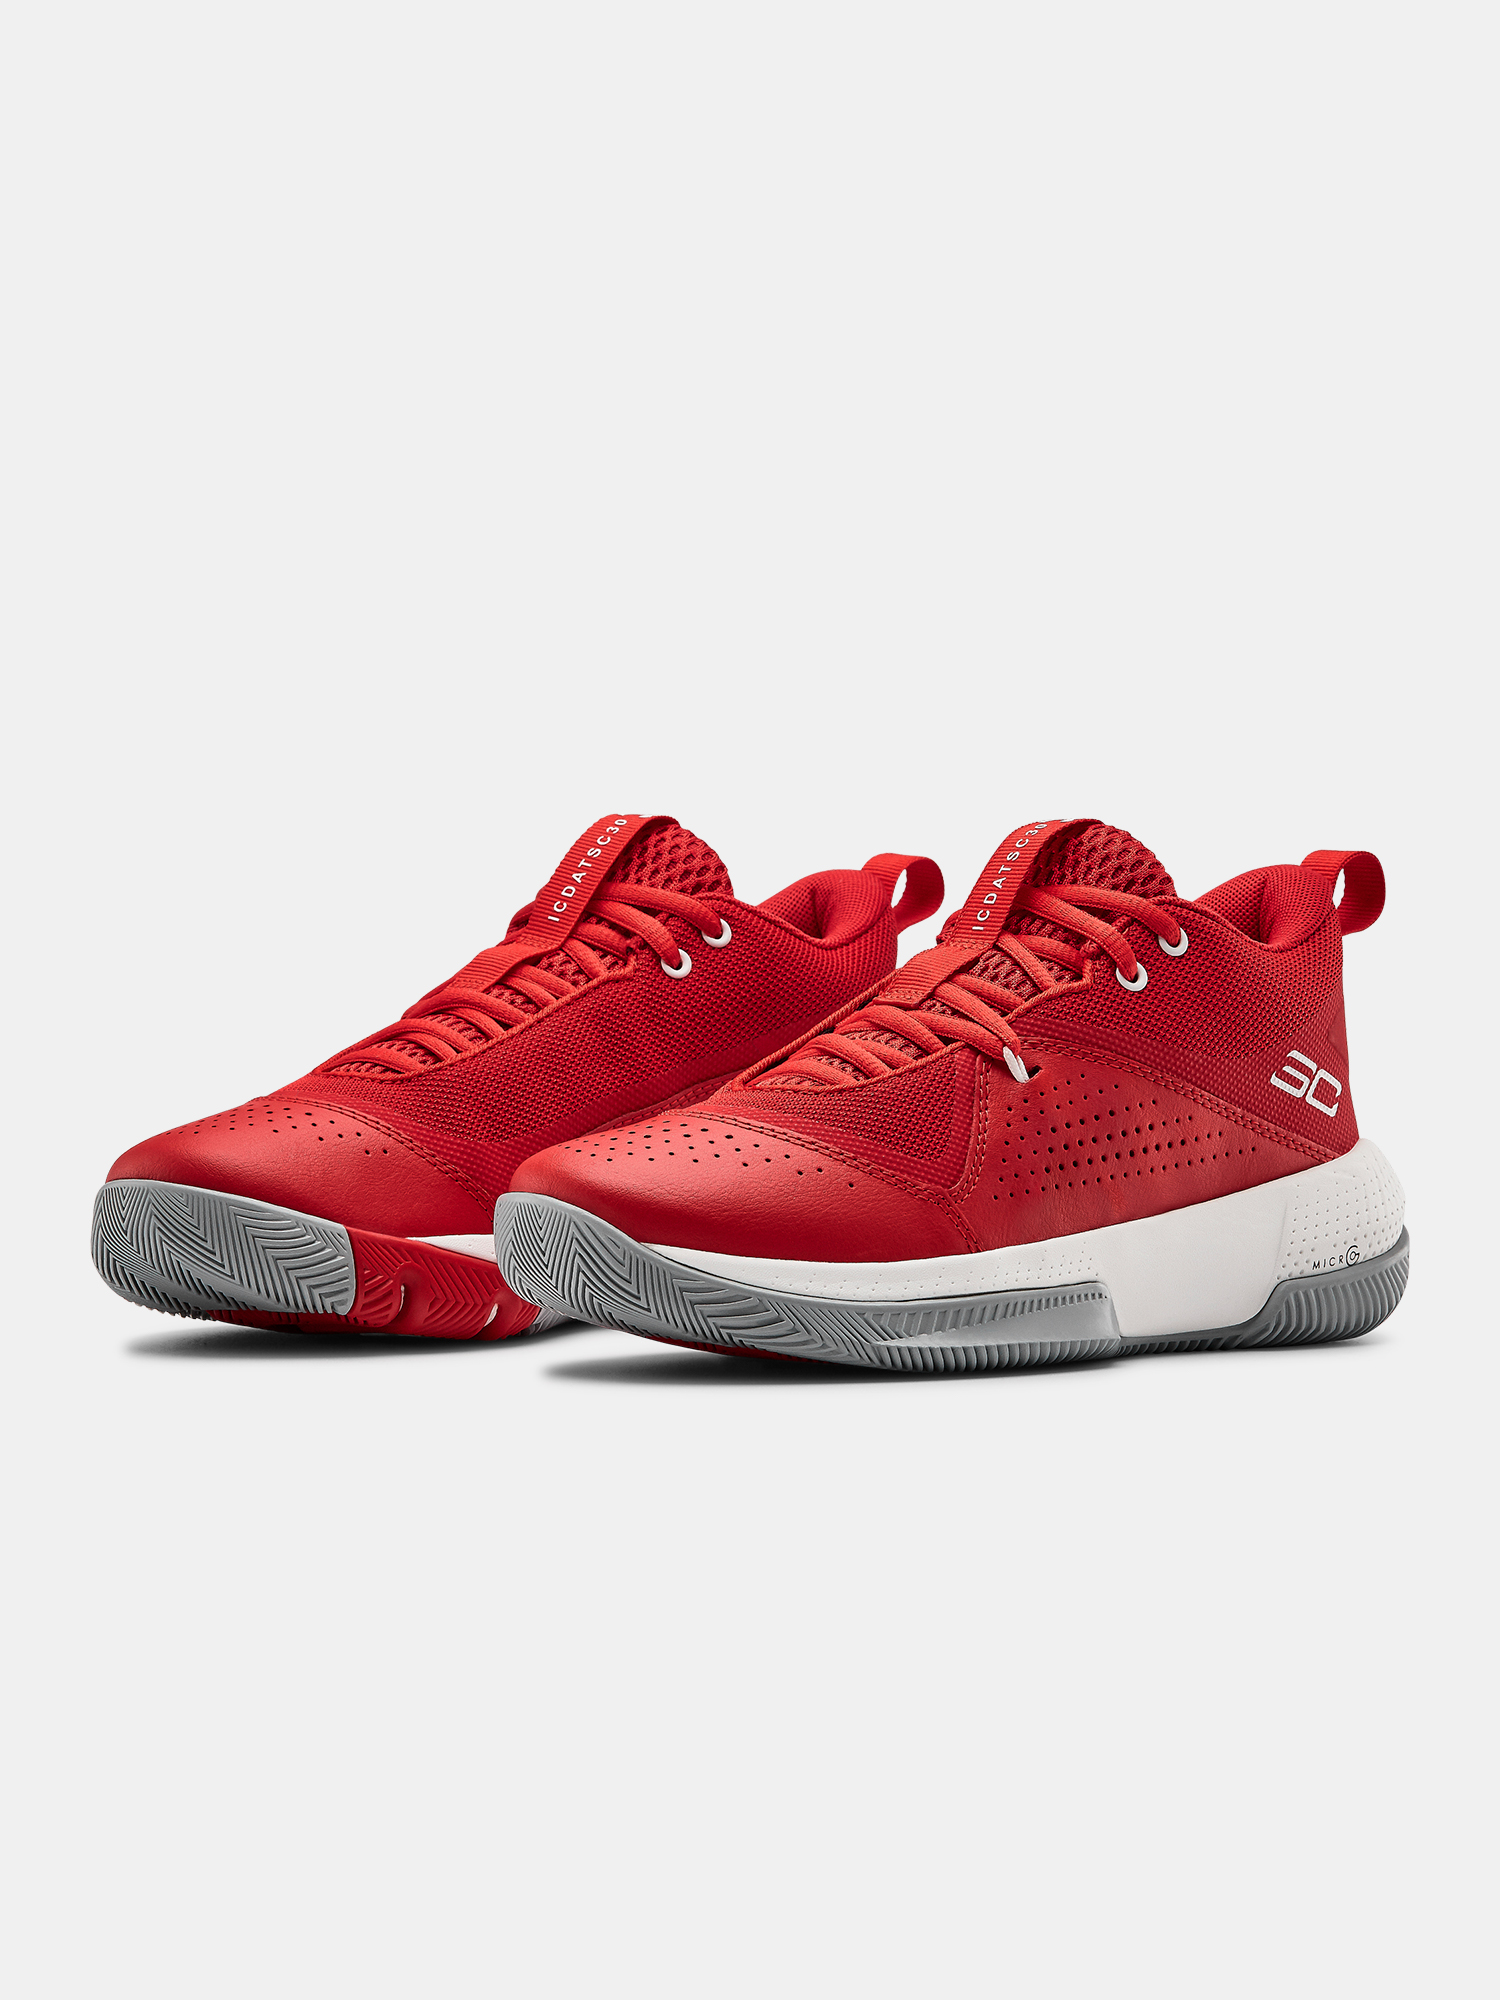 Boty Under Armour GS SC 3ZER0 IV-RED (3)